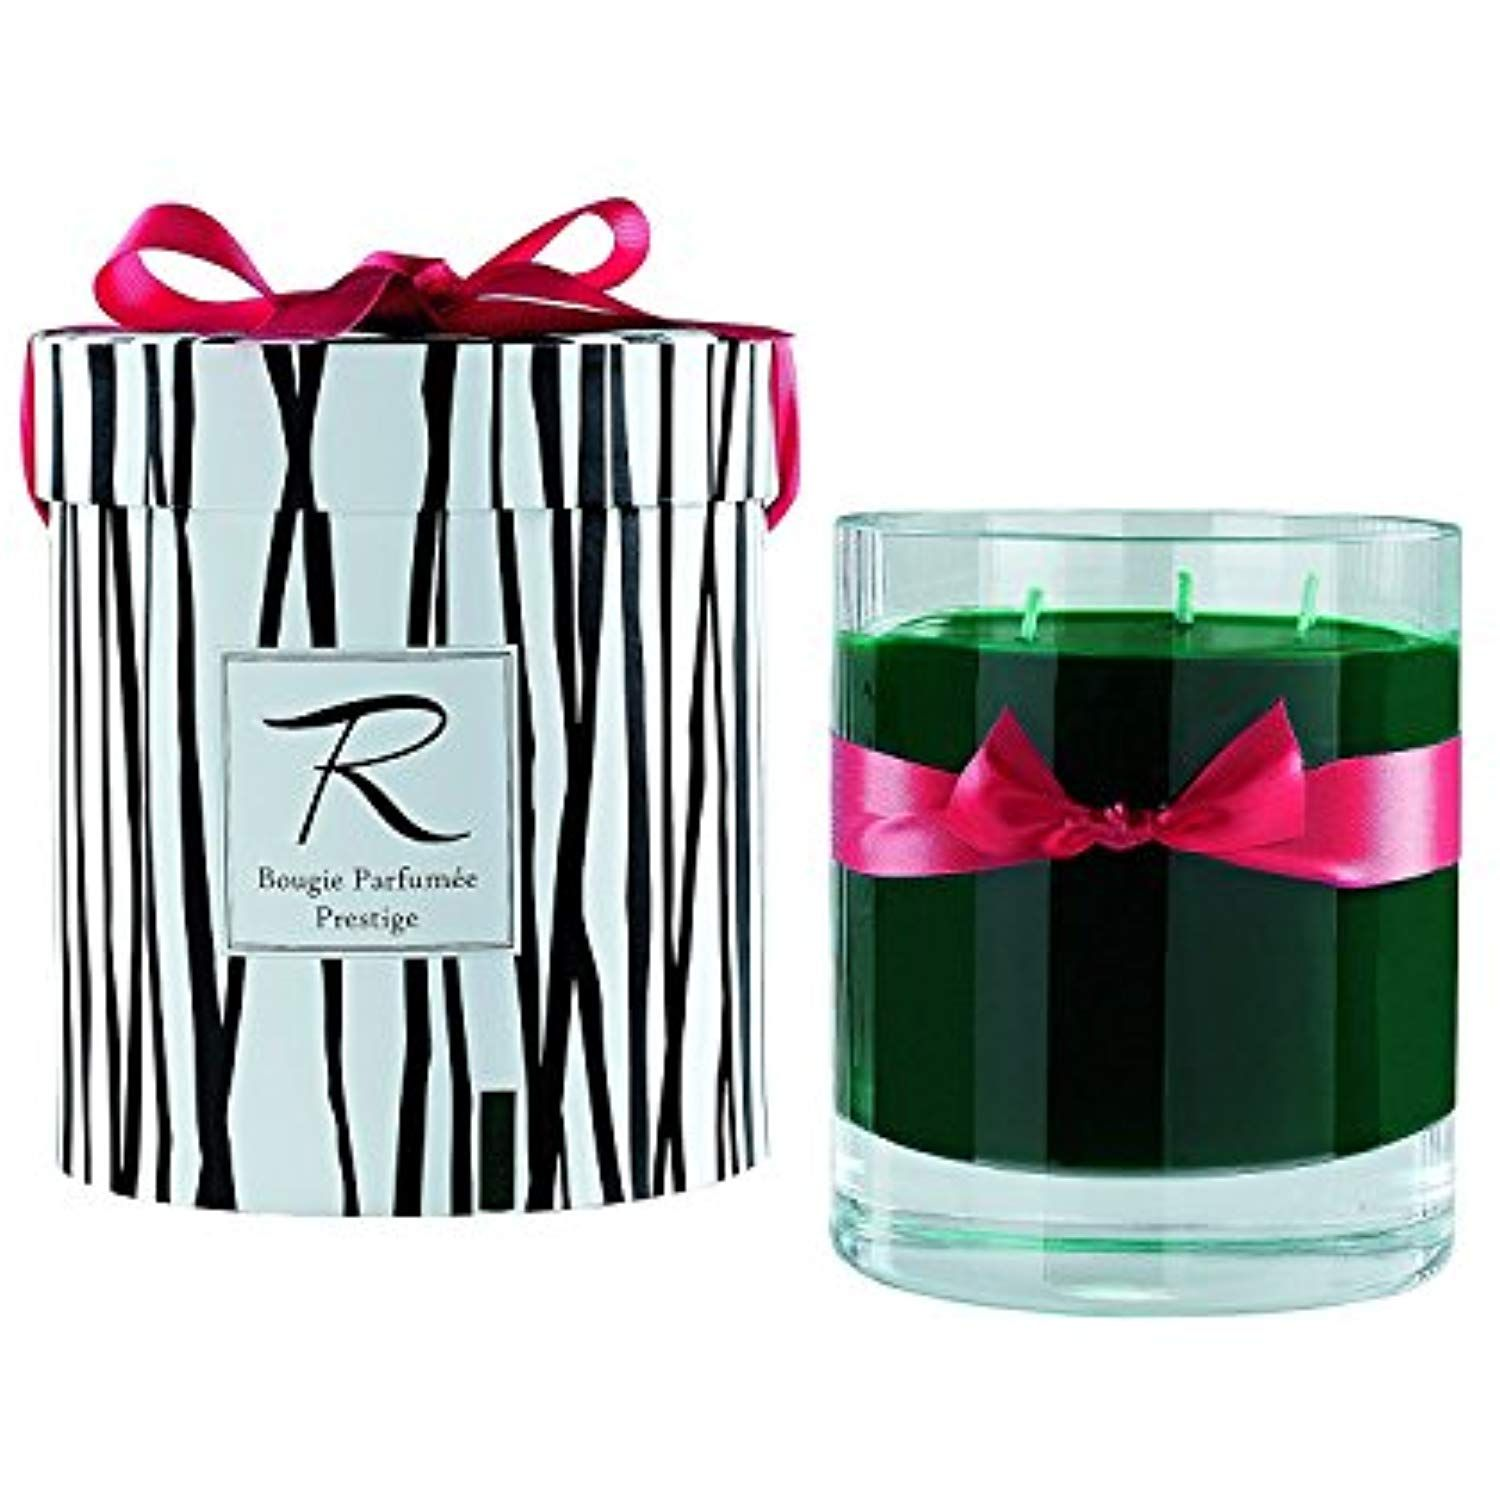 Rigaud Paris Cypres Bougie Parfumee Prestige Large 3 Wick Prestige Model Candle Green 6 Tall 150 Hours Bur Novelty Candles Specialty Candles Candle Pot